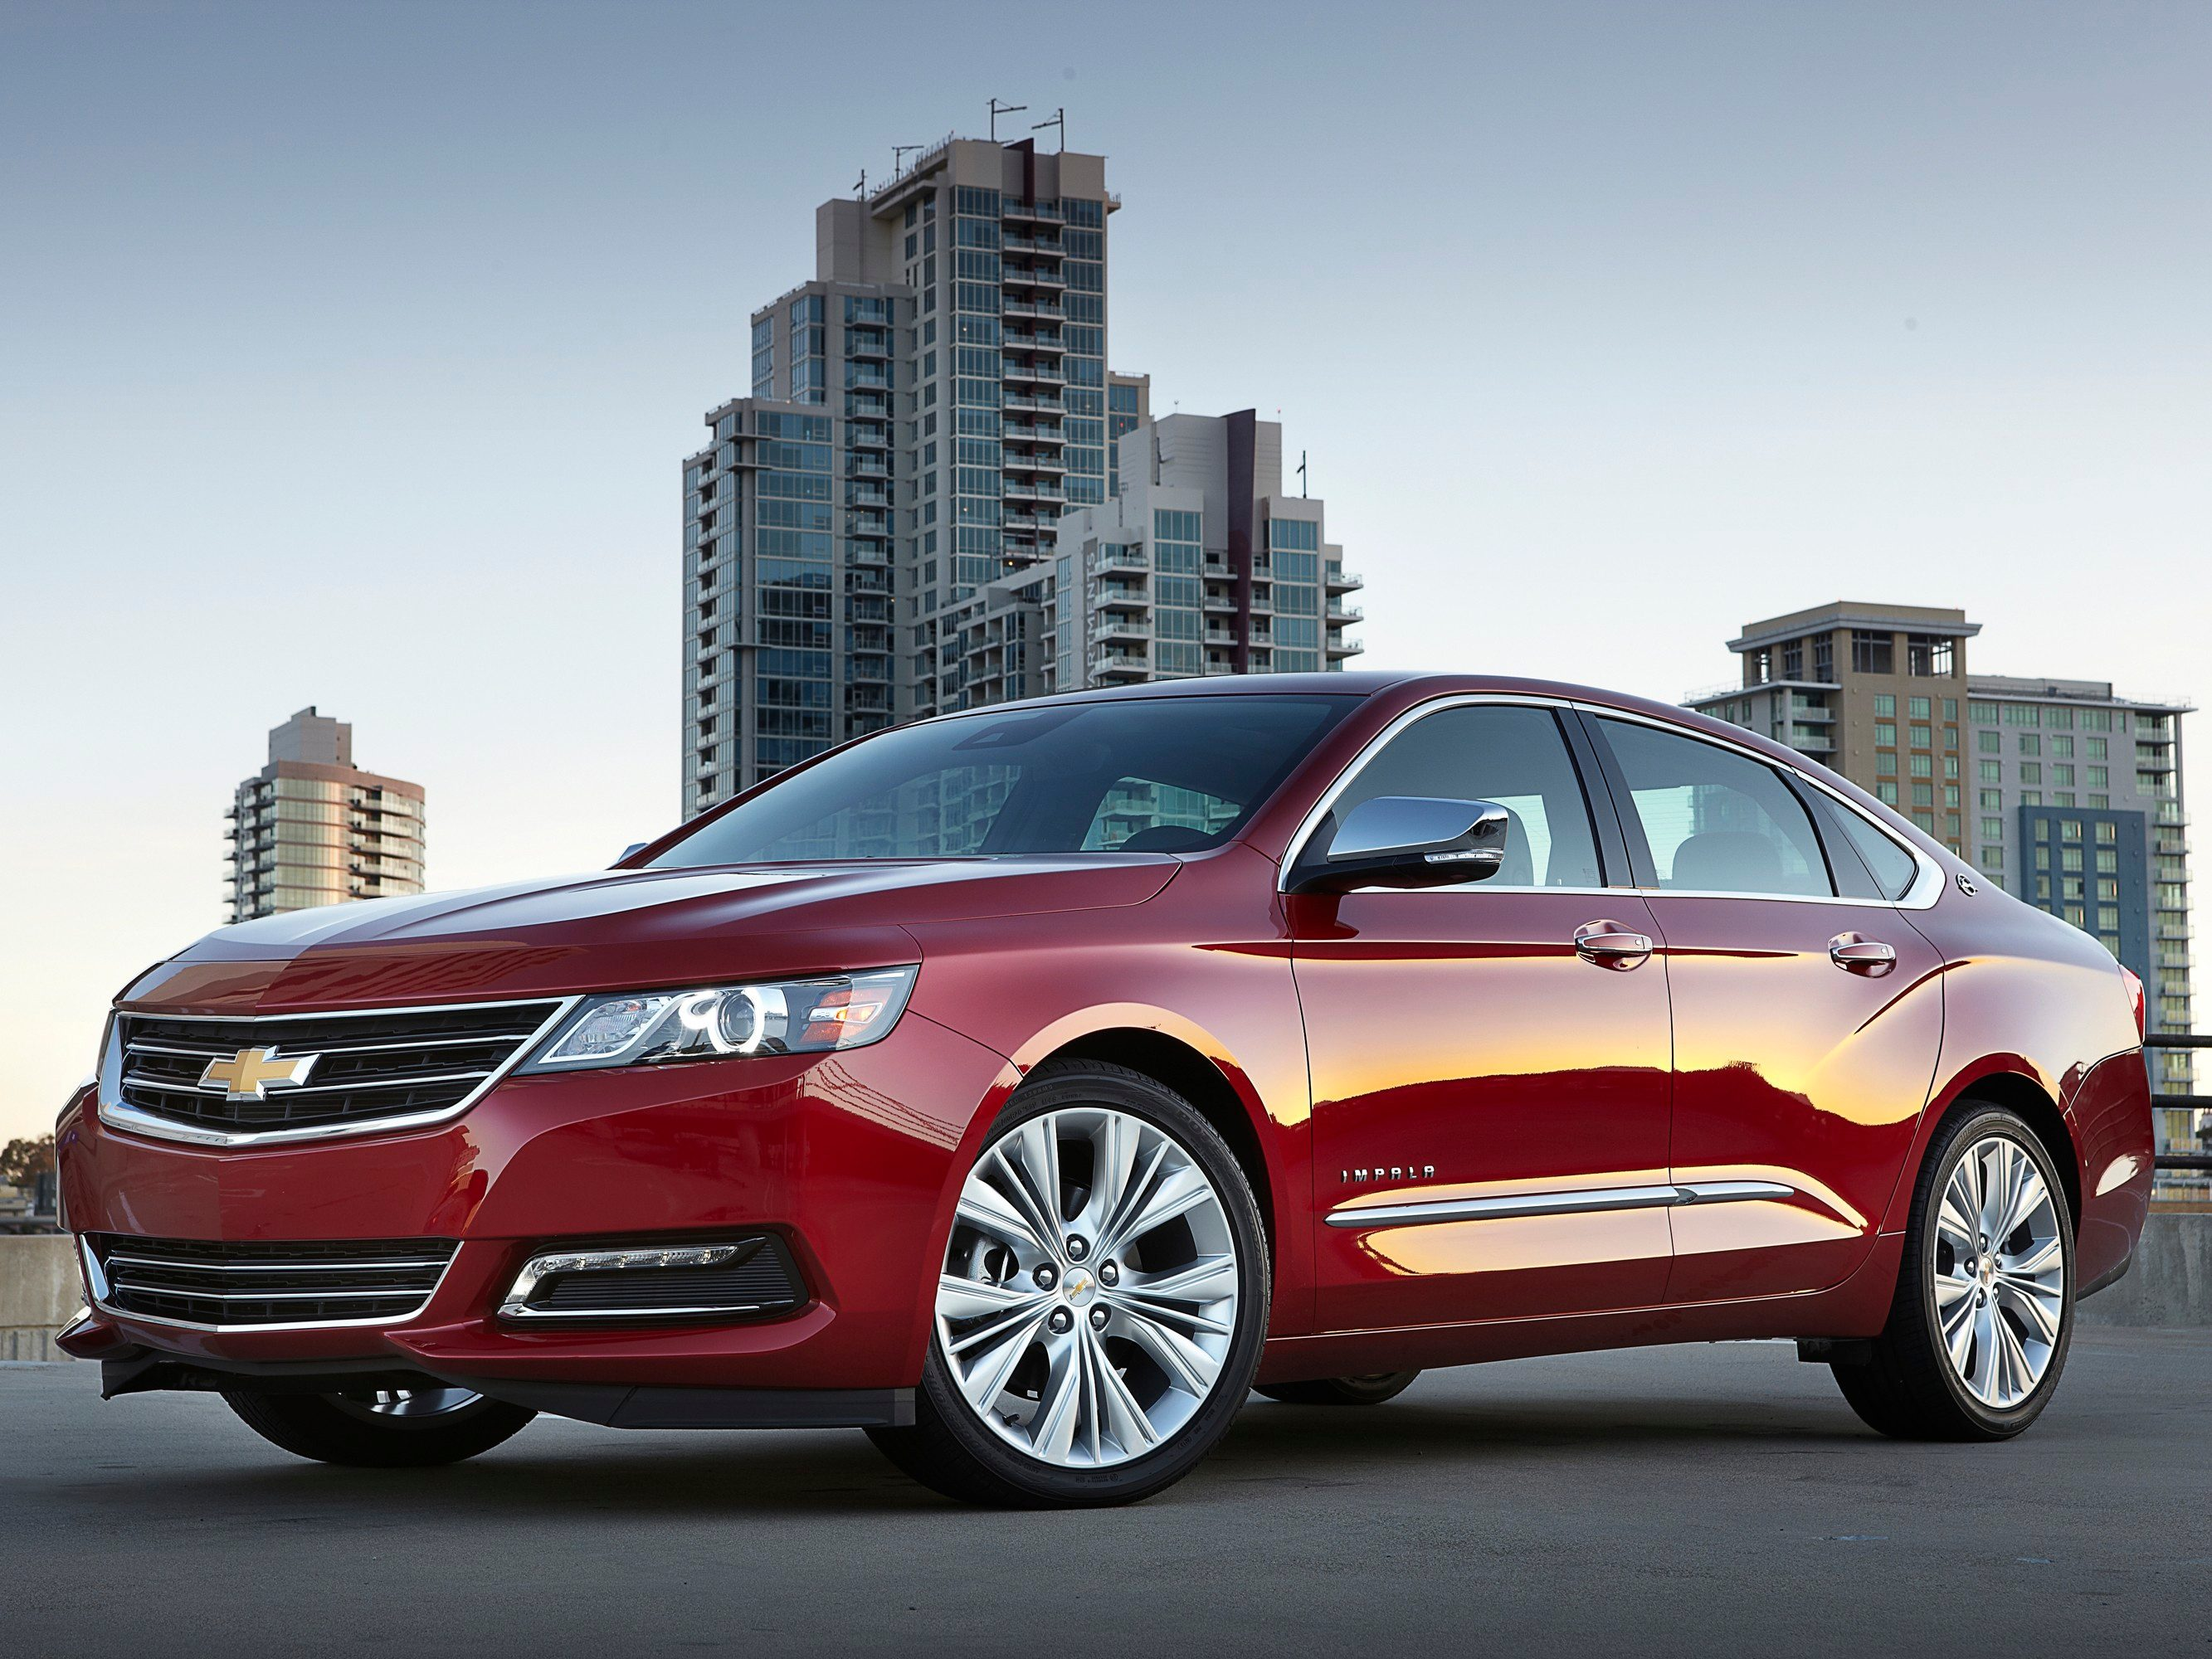 Introducing the 2016 Chevrolet Impala